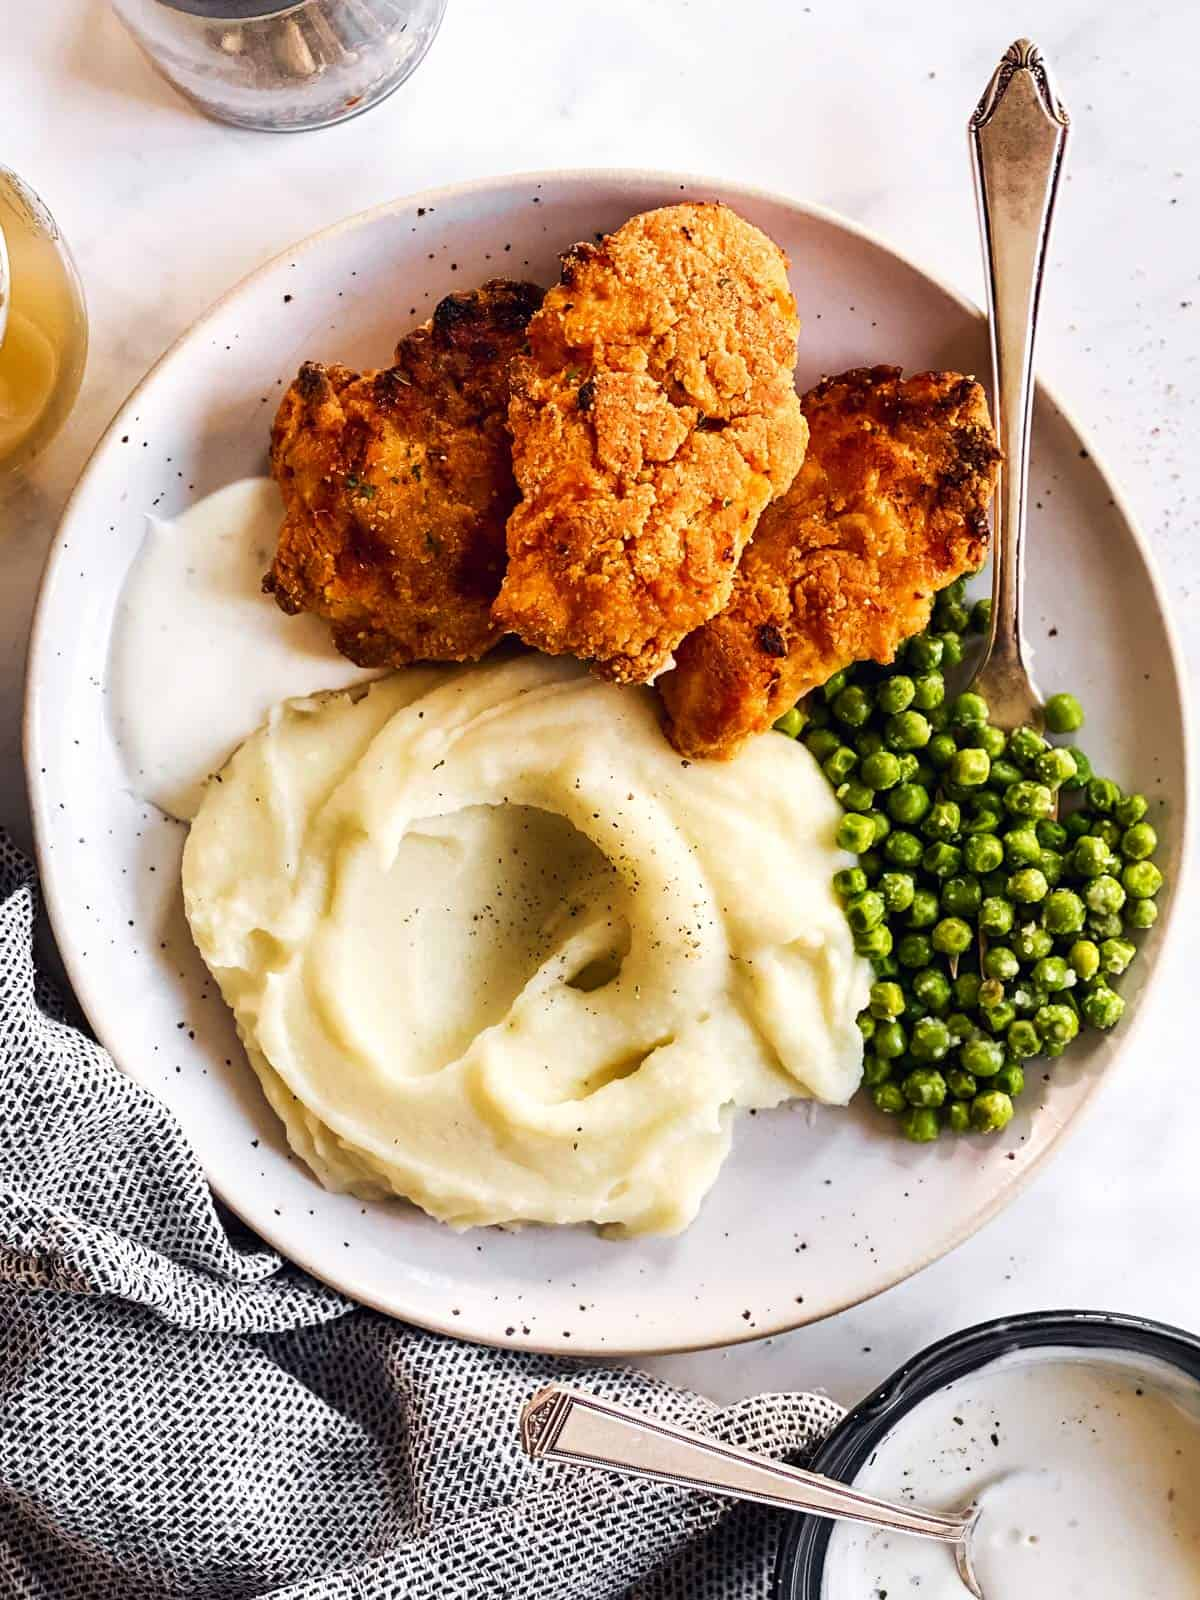 plate with mashed potatoes, peas and fried chicken